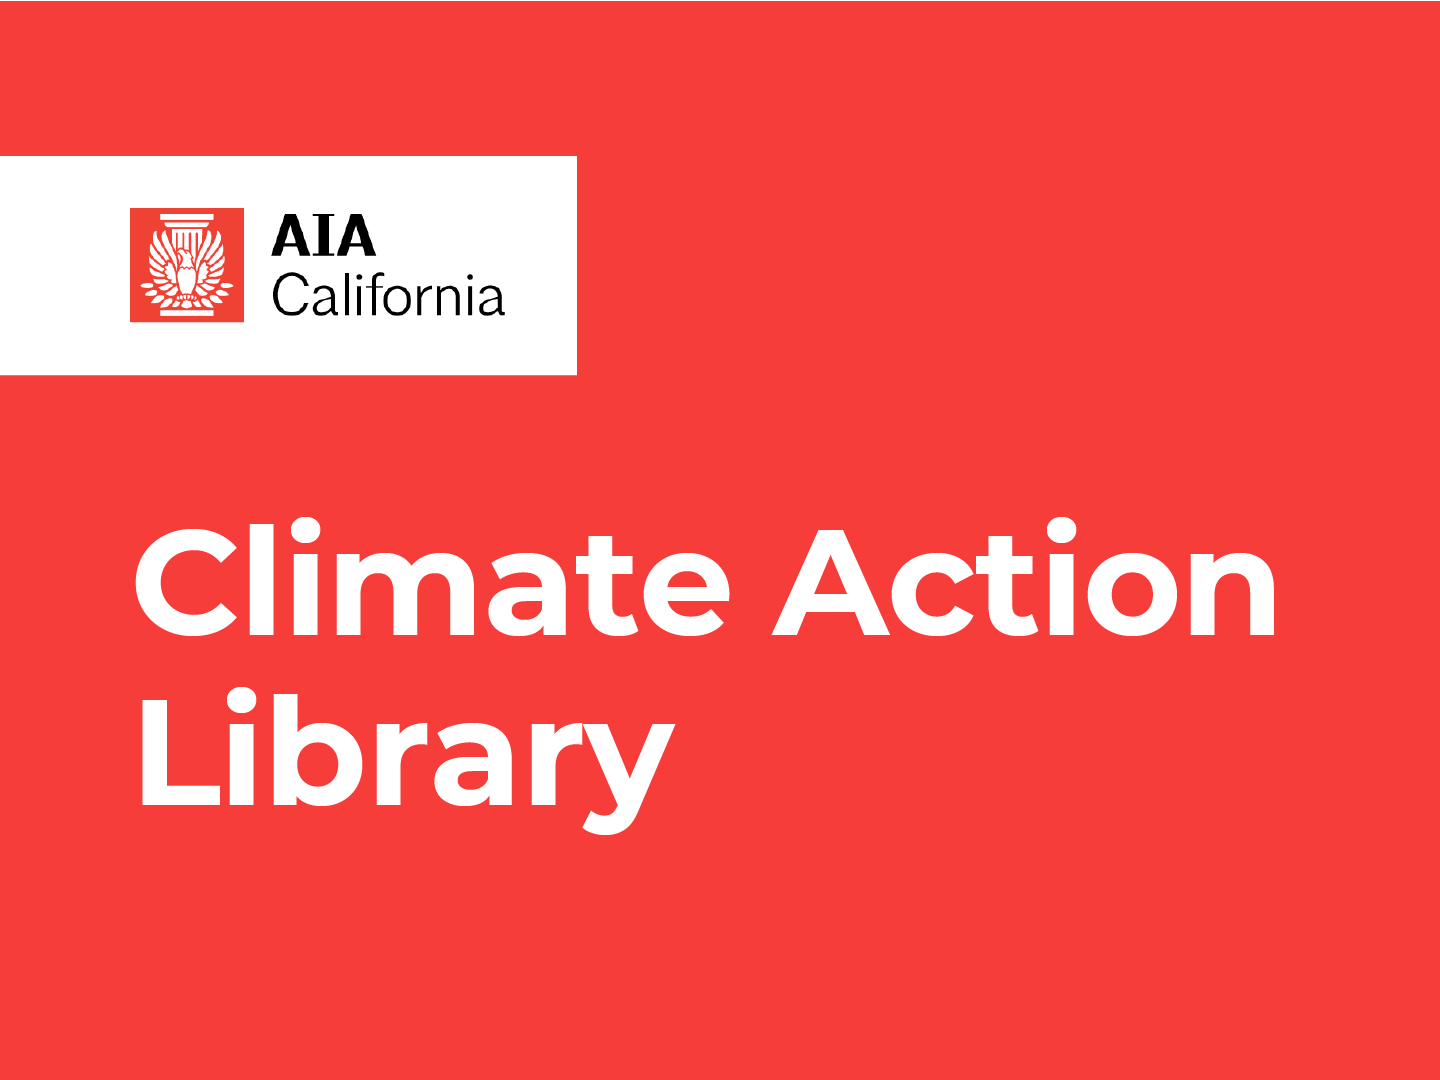 Banner of AIA California Climate Action Library